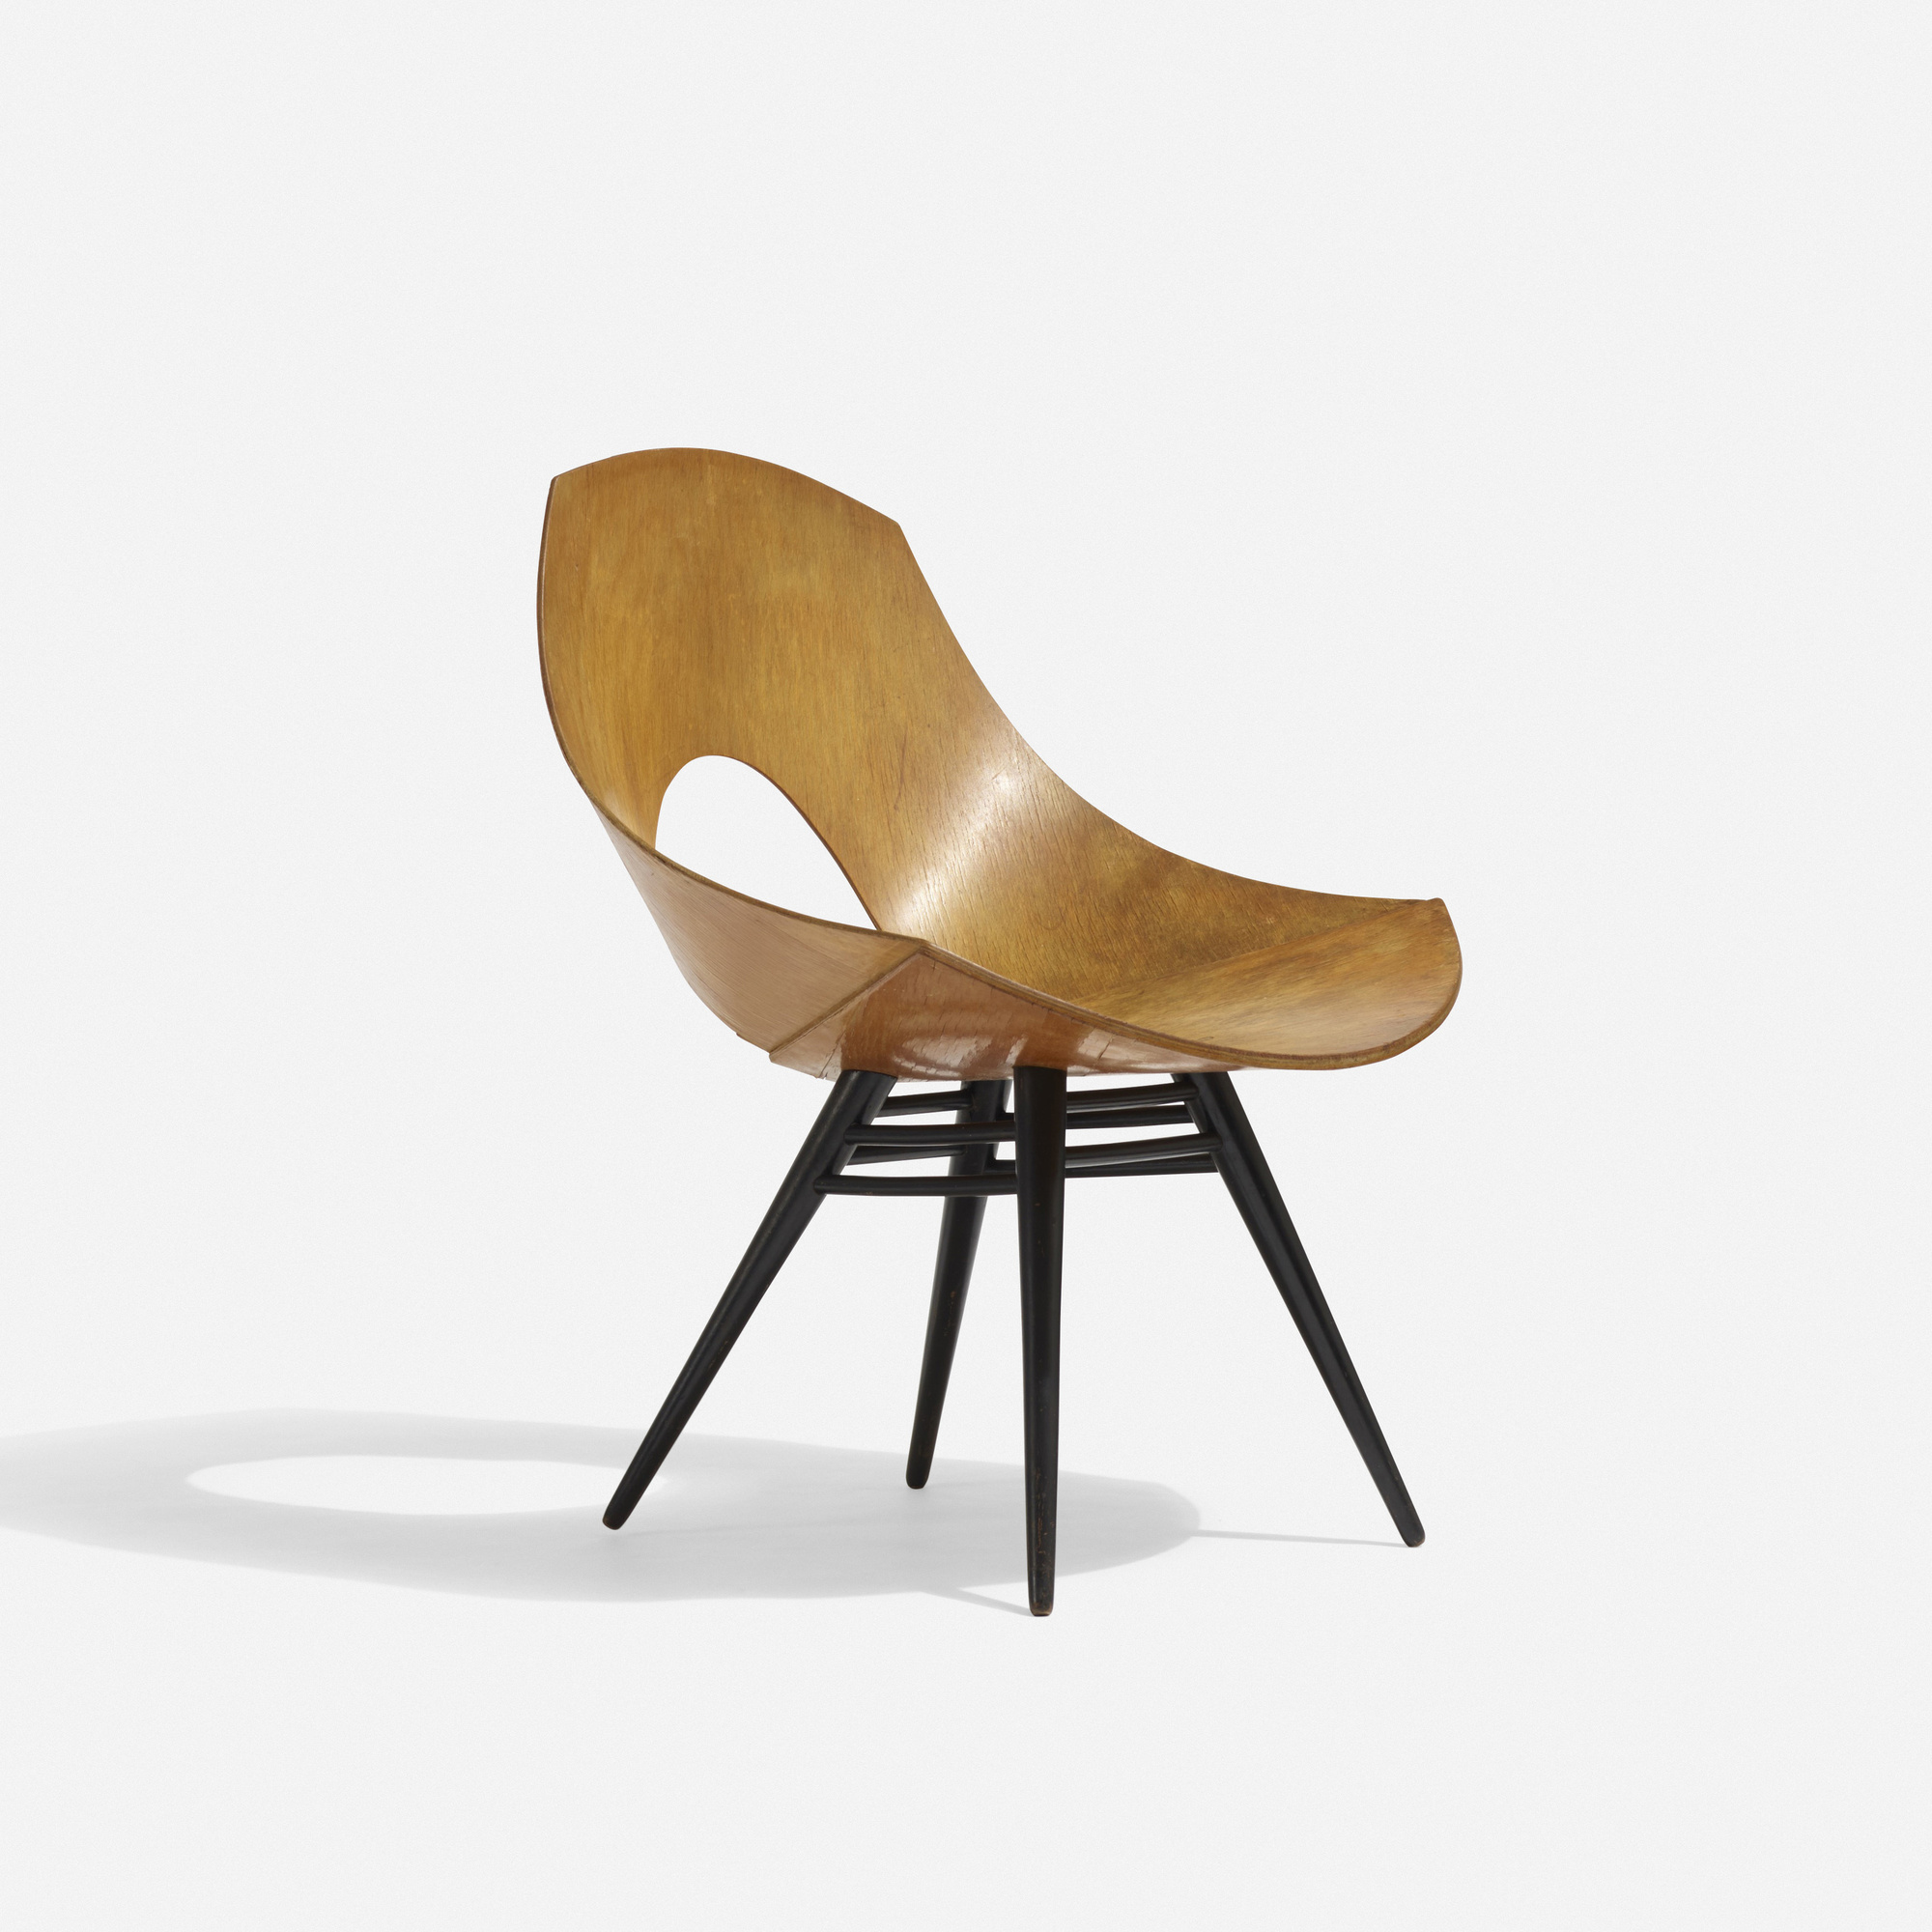 Scandinavian Chair 266 Scandinavian Chair Scandinavian Design 26 April 2018